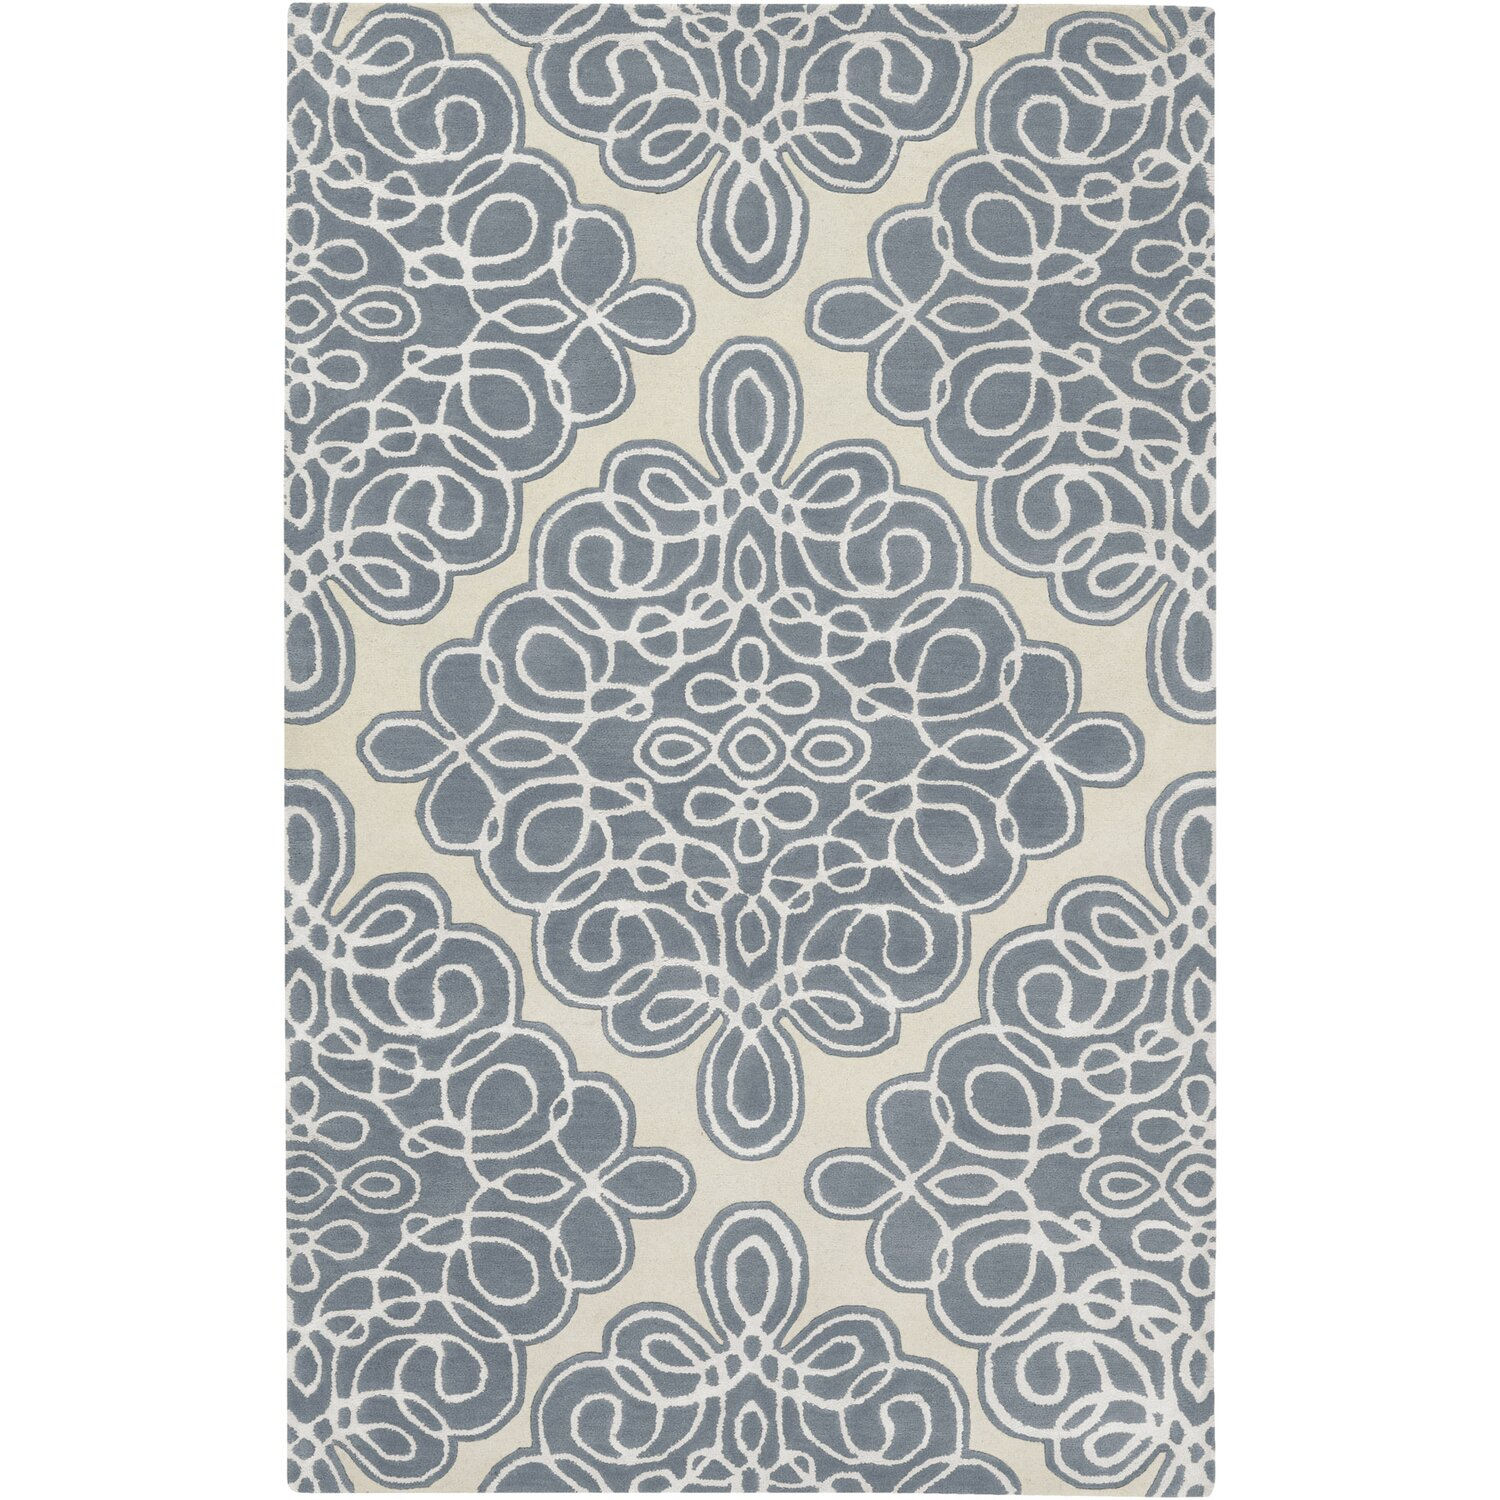 Home Clics Rugs Modern Cream Area Rug Source Abuse Report